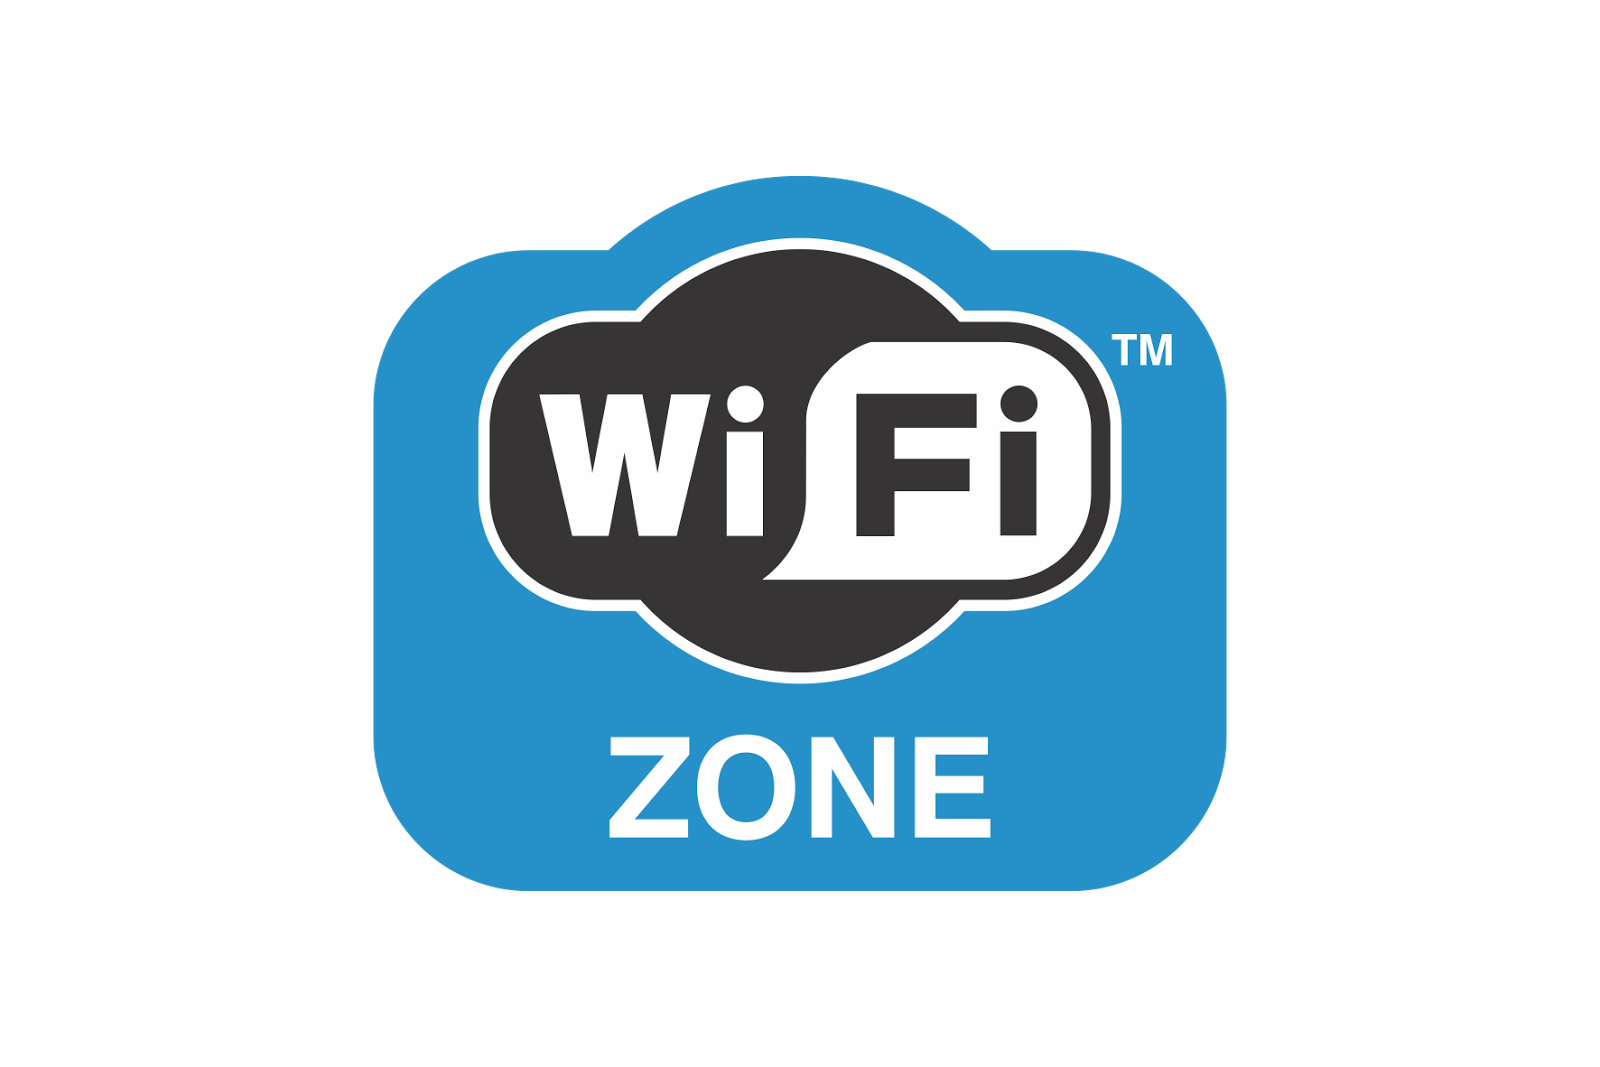 Wifi zone png. Logo vector